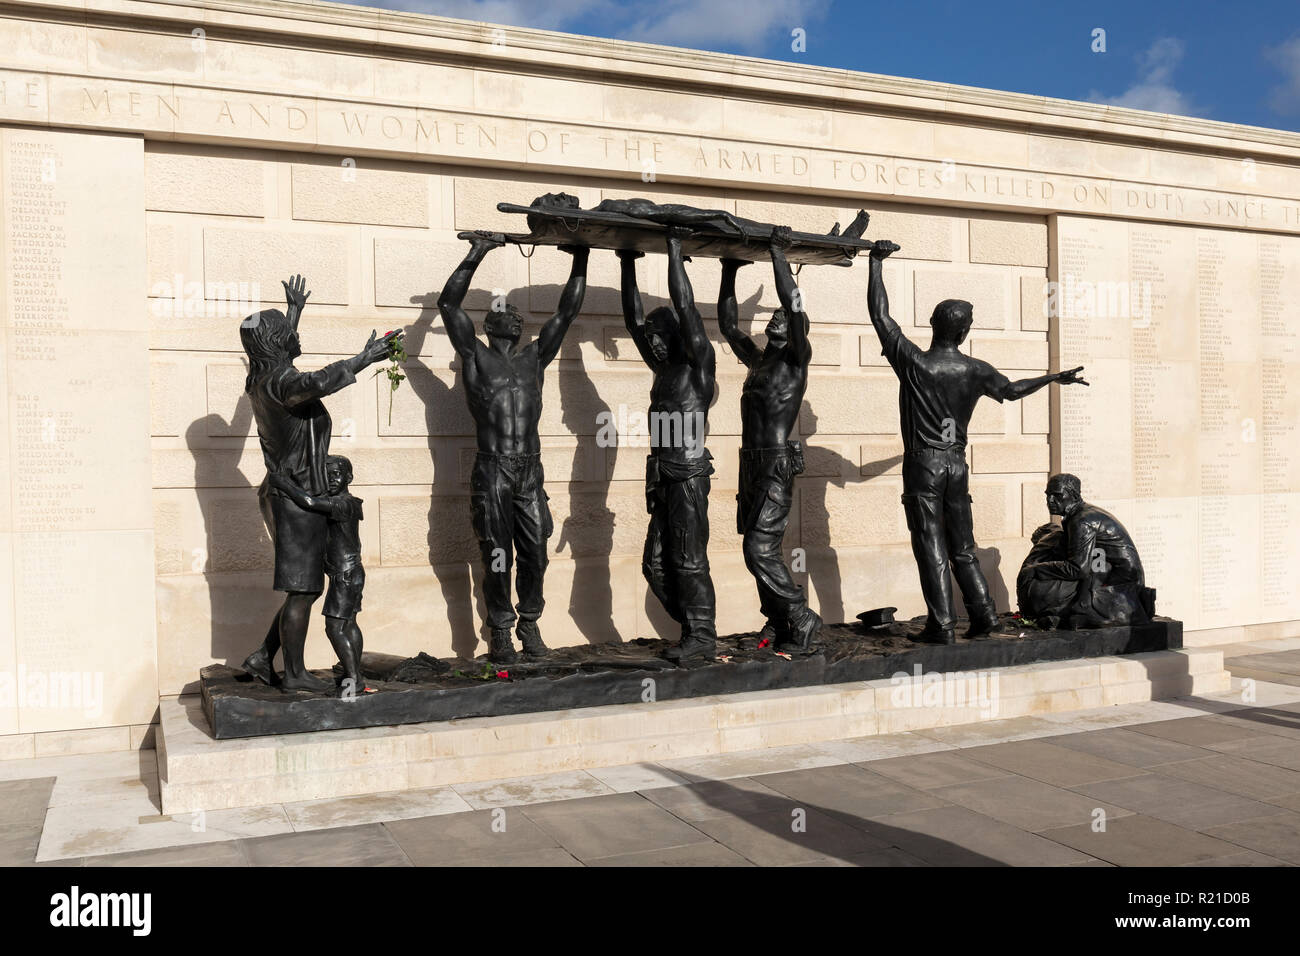 The bronze Stretcher Bearers sculpture in The Armed Forces Memorial, National Memorial Arboretum, Staffordshire - Stock Image